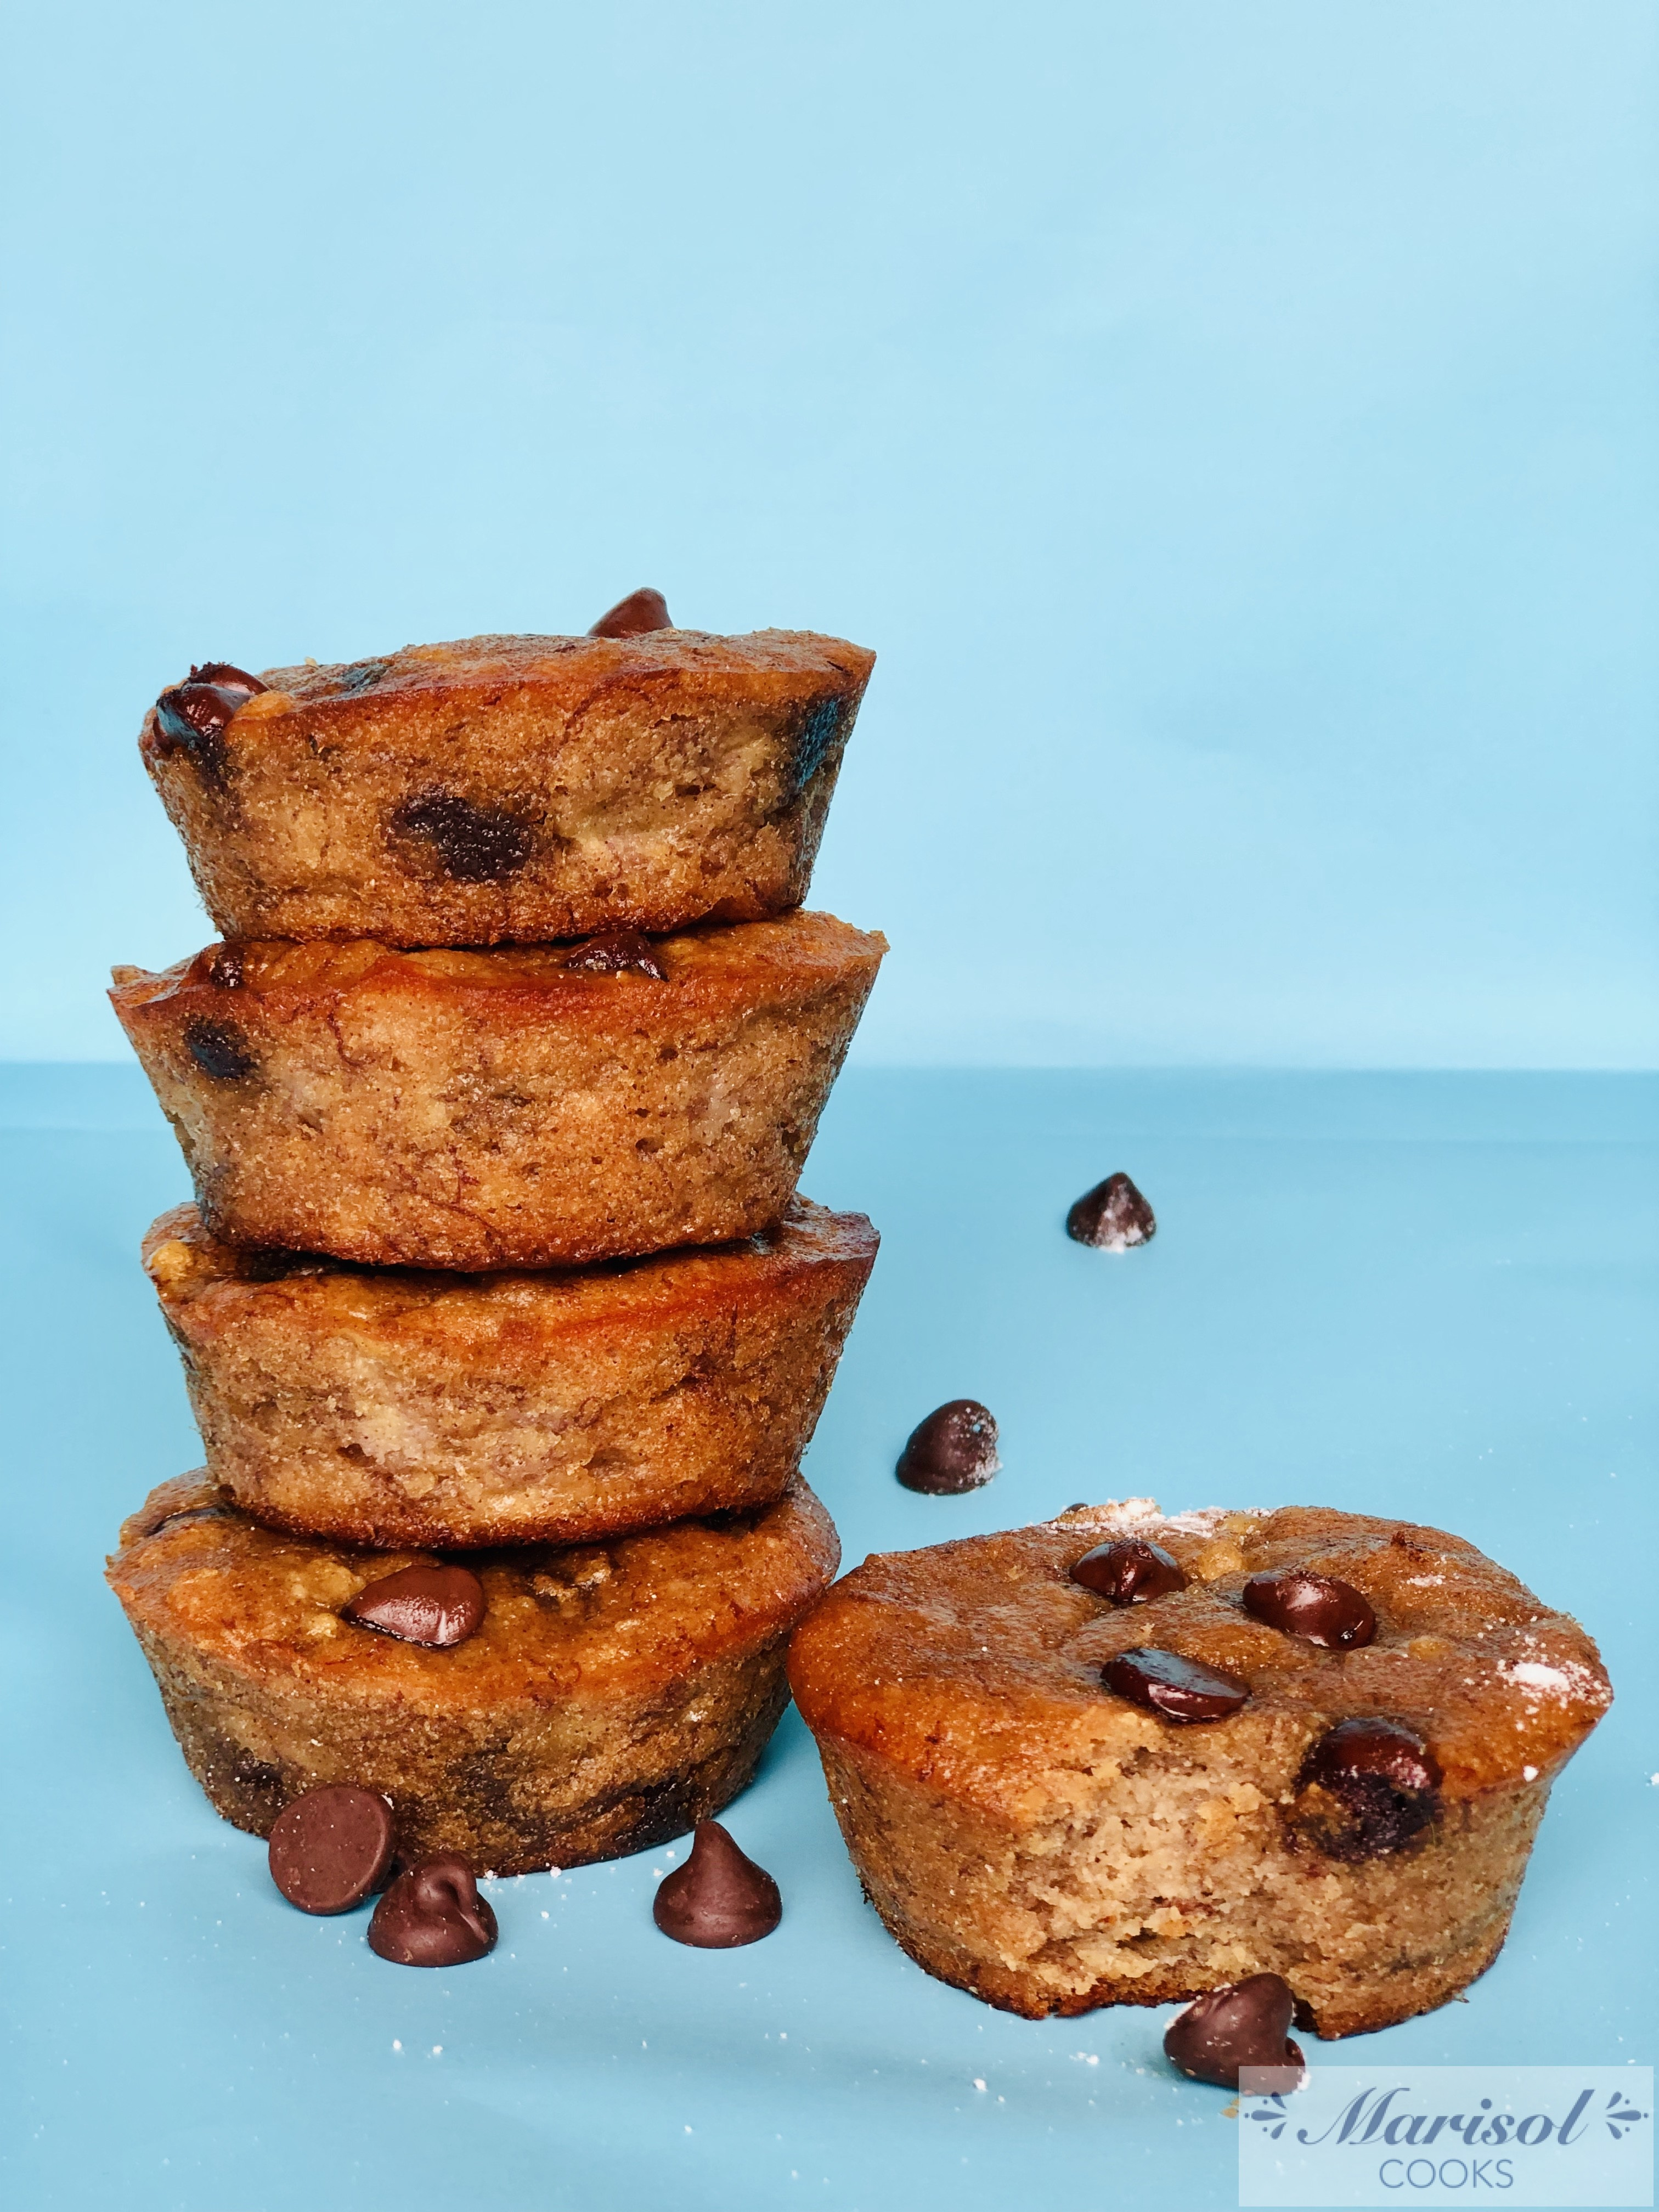 Peanut butter and Chocolate Chip Banana muffins